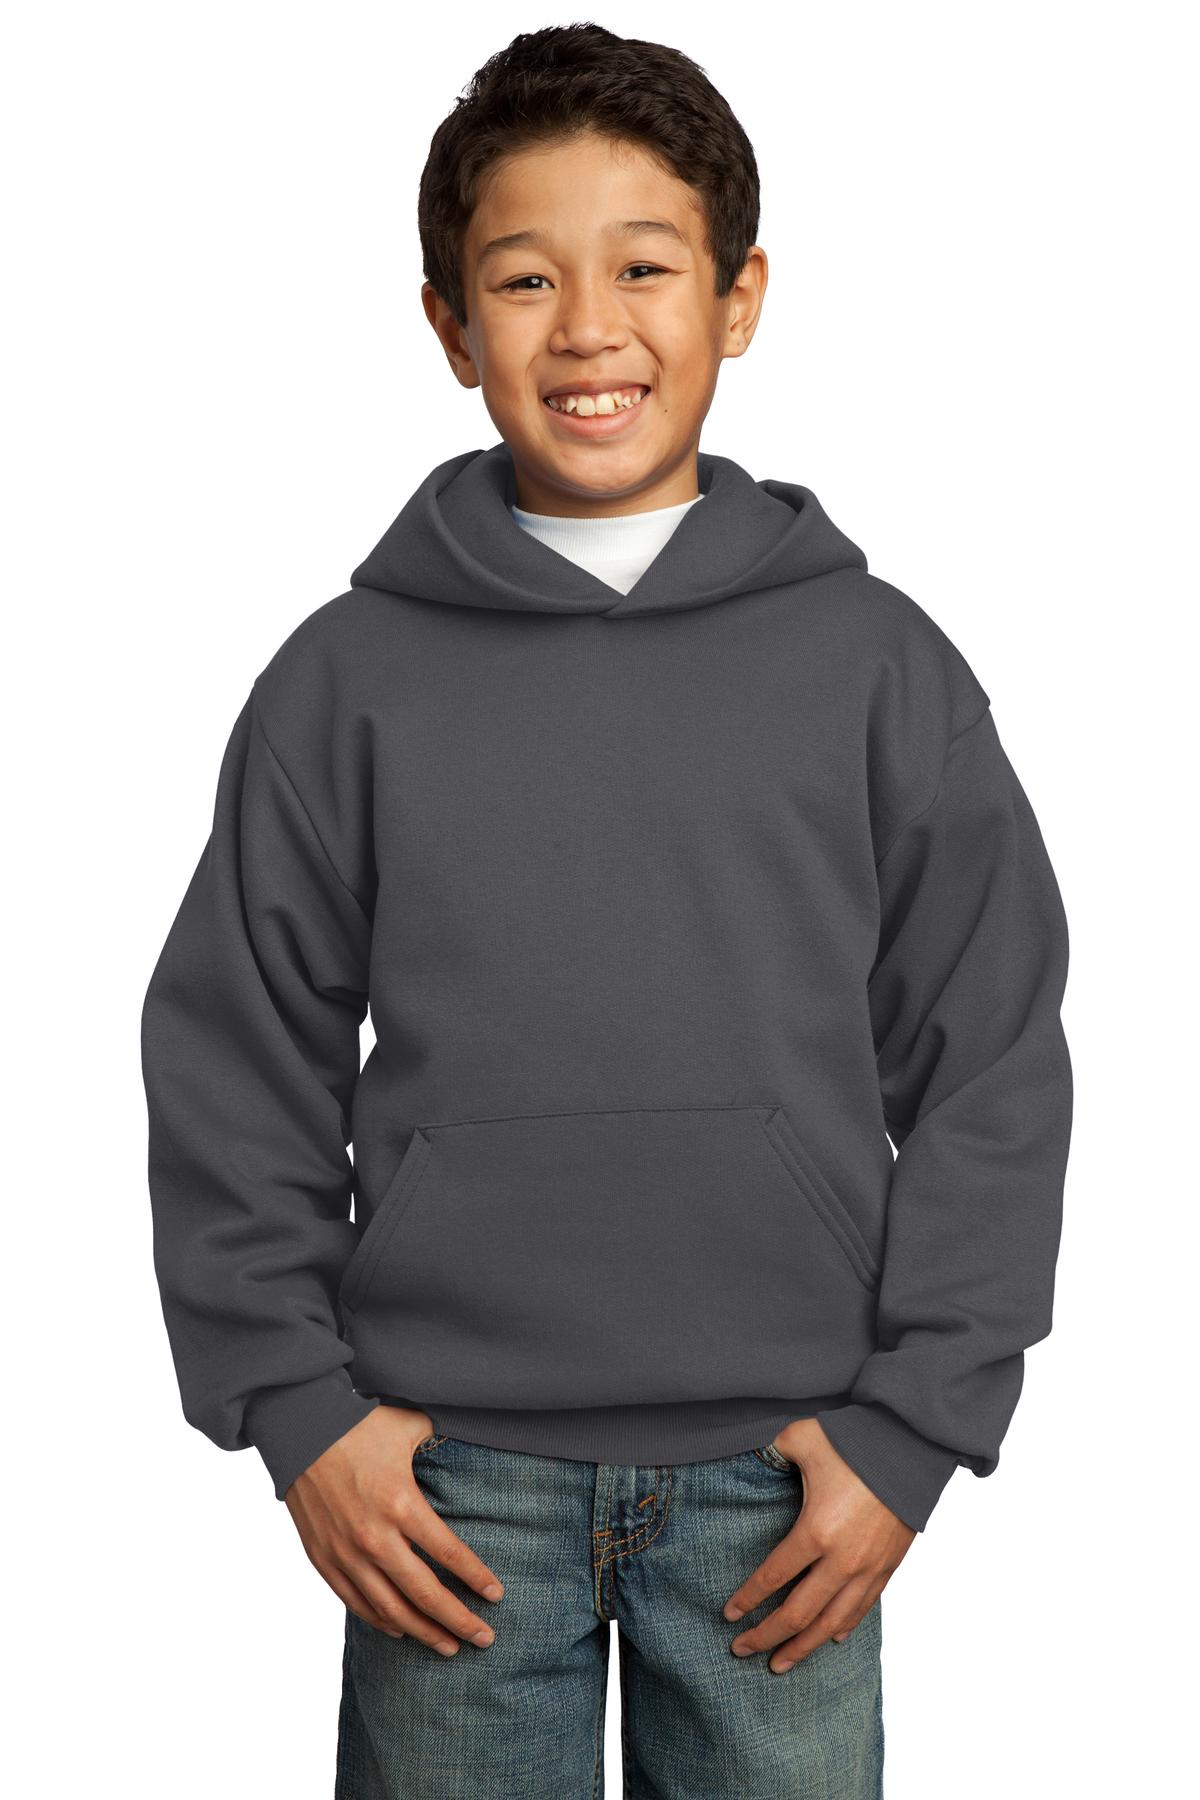 Charcoal Port & Company - Youth Core Fleece Pullover Hooded Sweatshirt.